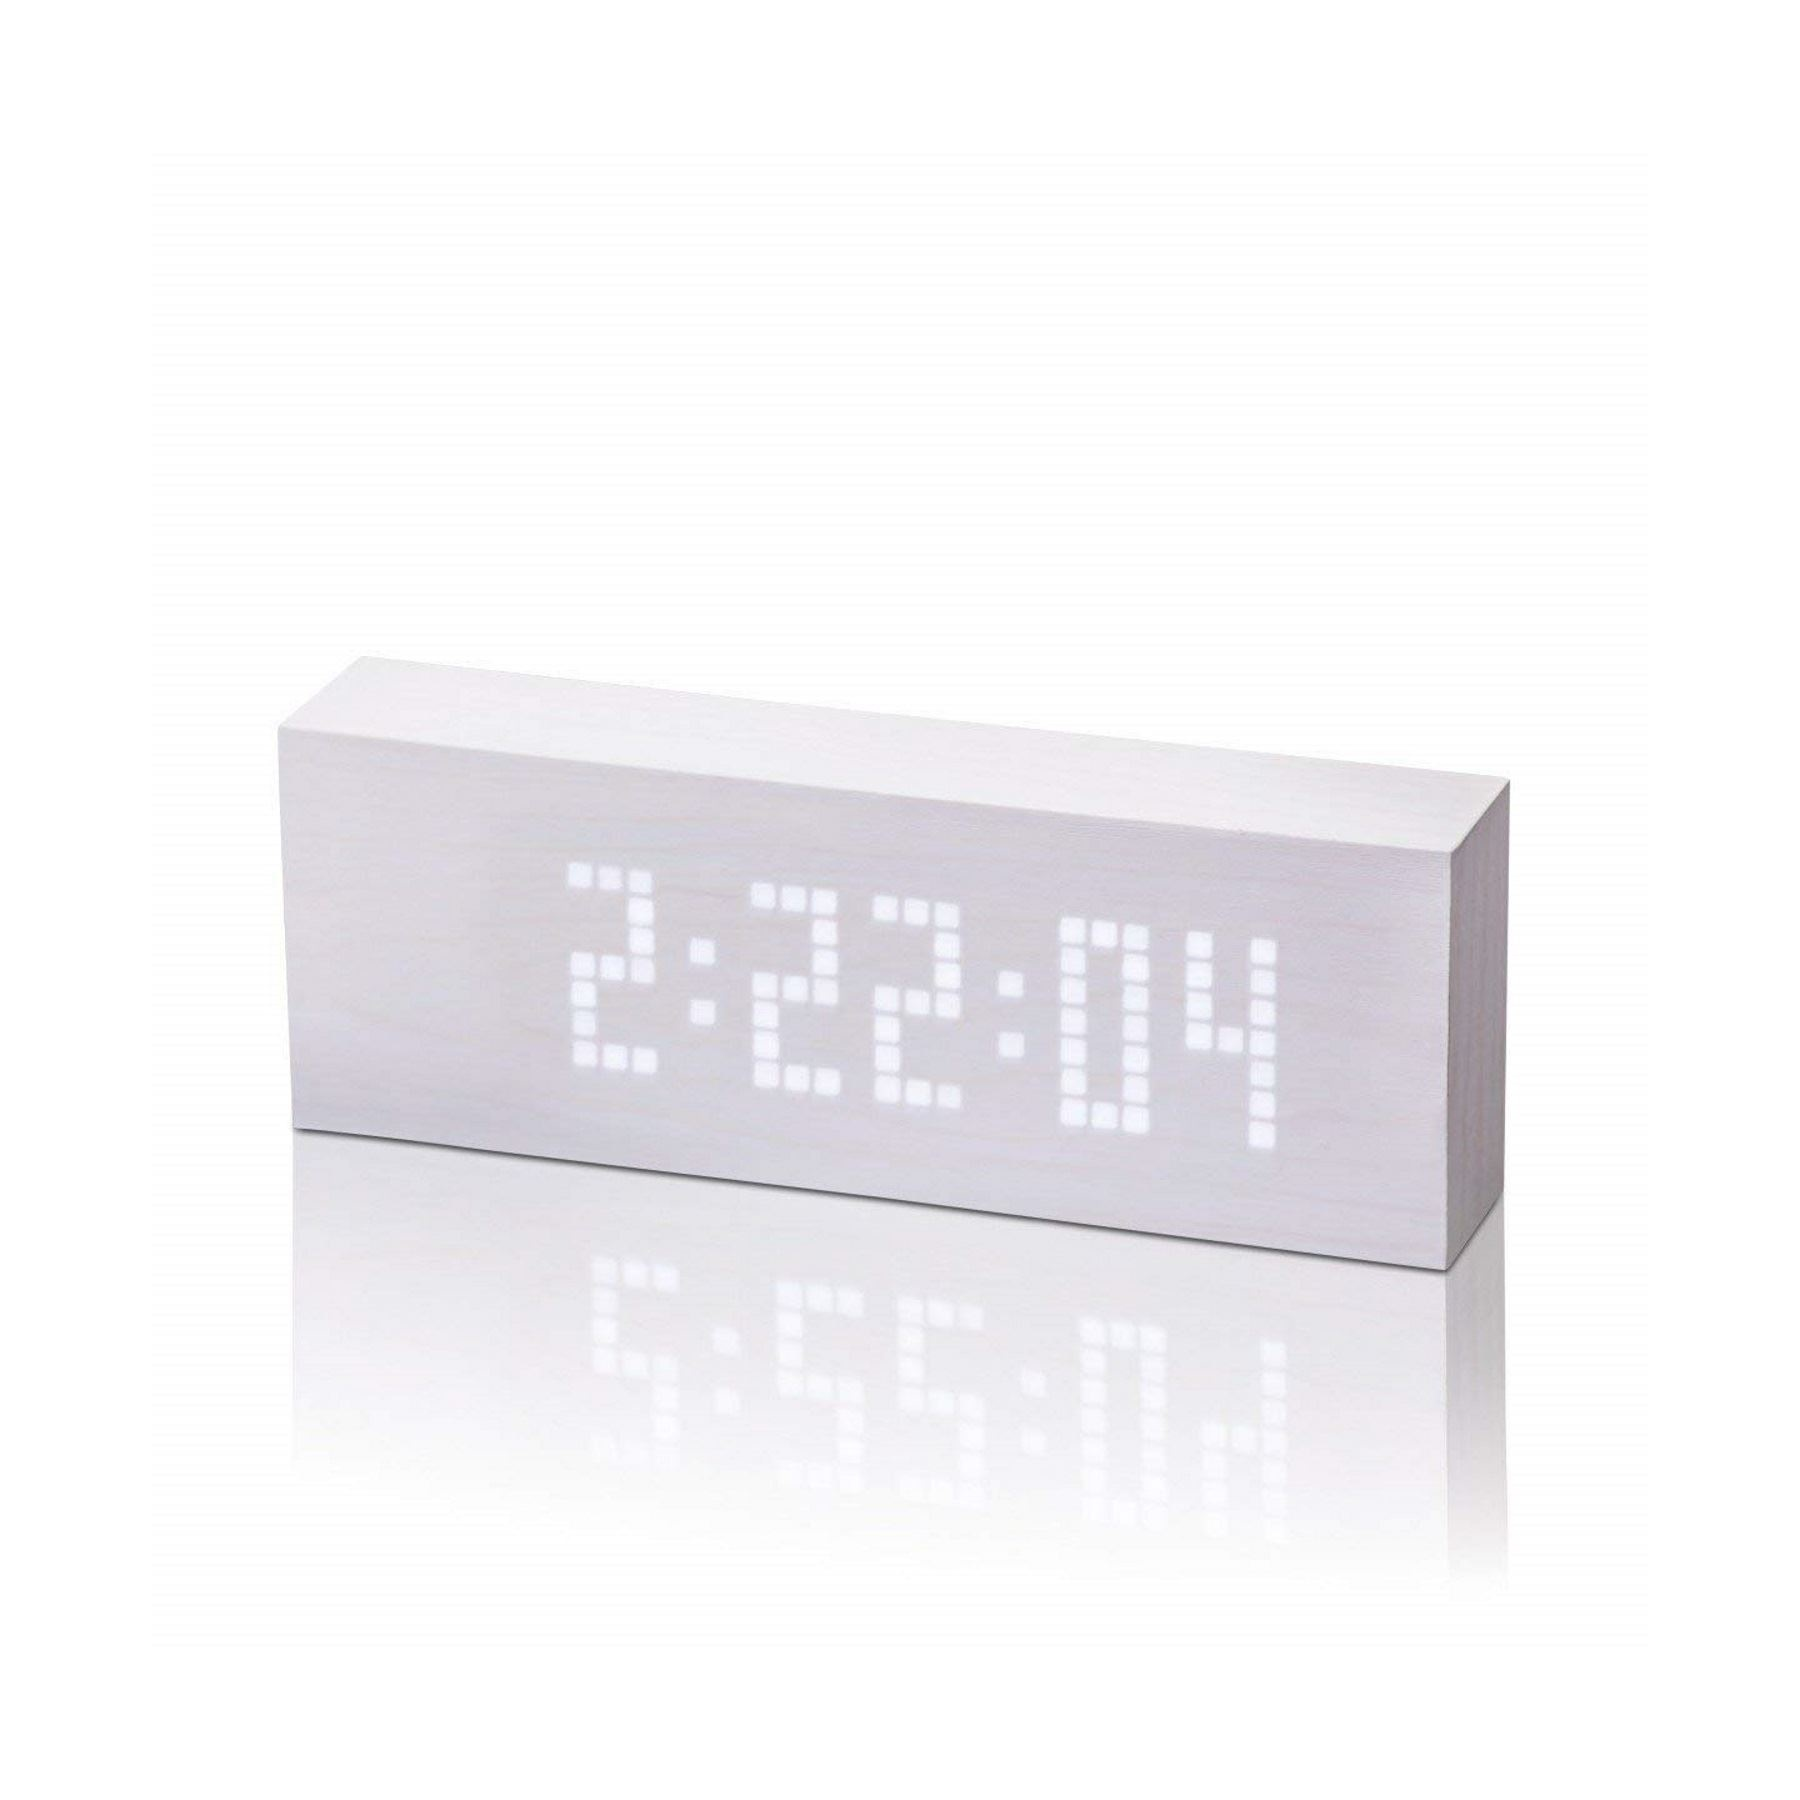 Gingko Message Click Clock - Sound Activated